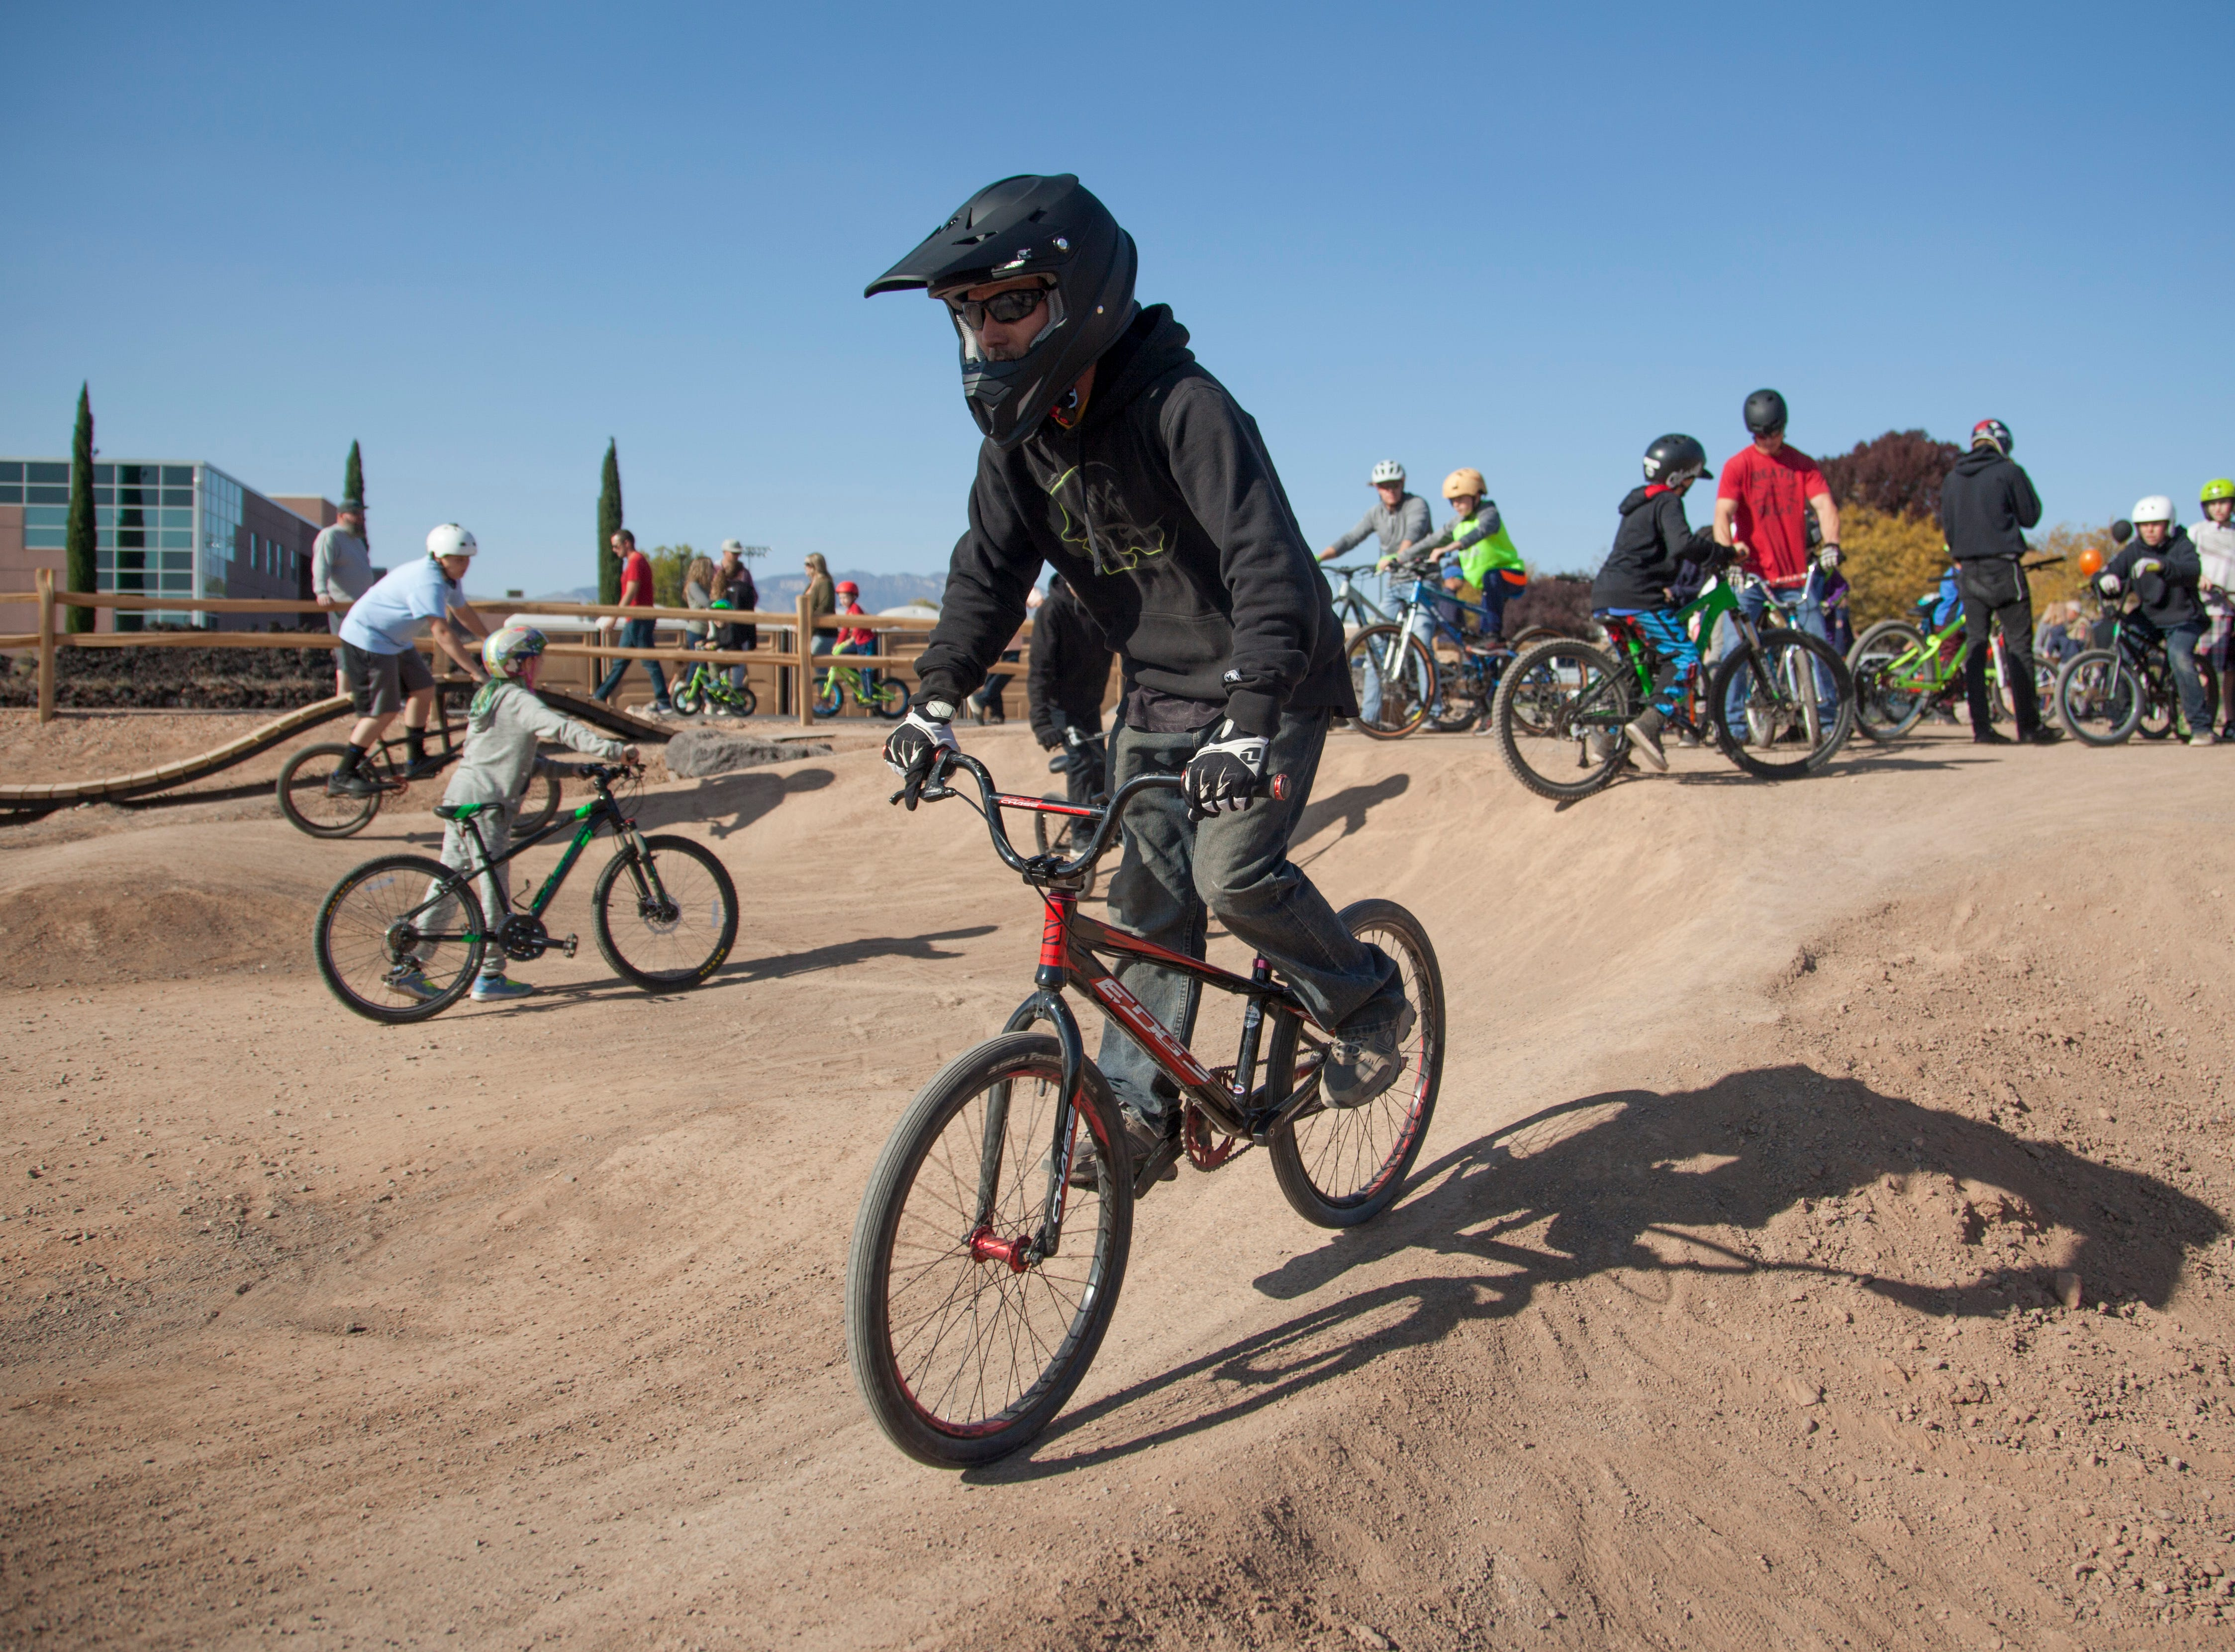 Cyclists from around the St. George area gather for the opening of Snake Hollow Saturday, Nov. 17, 2018. The new bike park is designed to help cyclists develop skills in a safe environment.